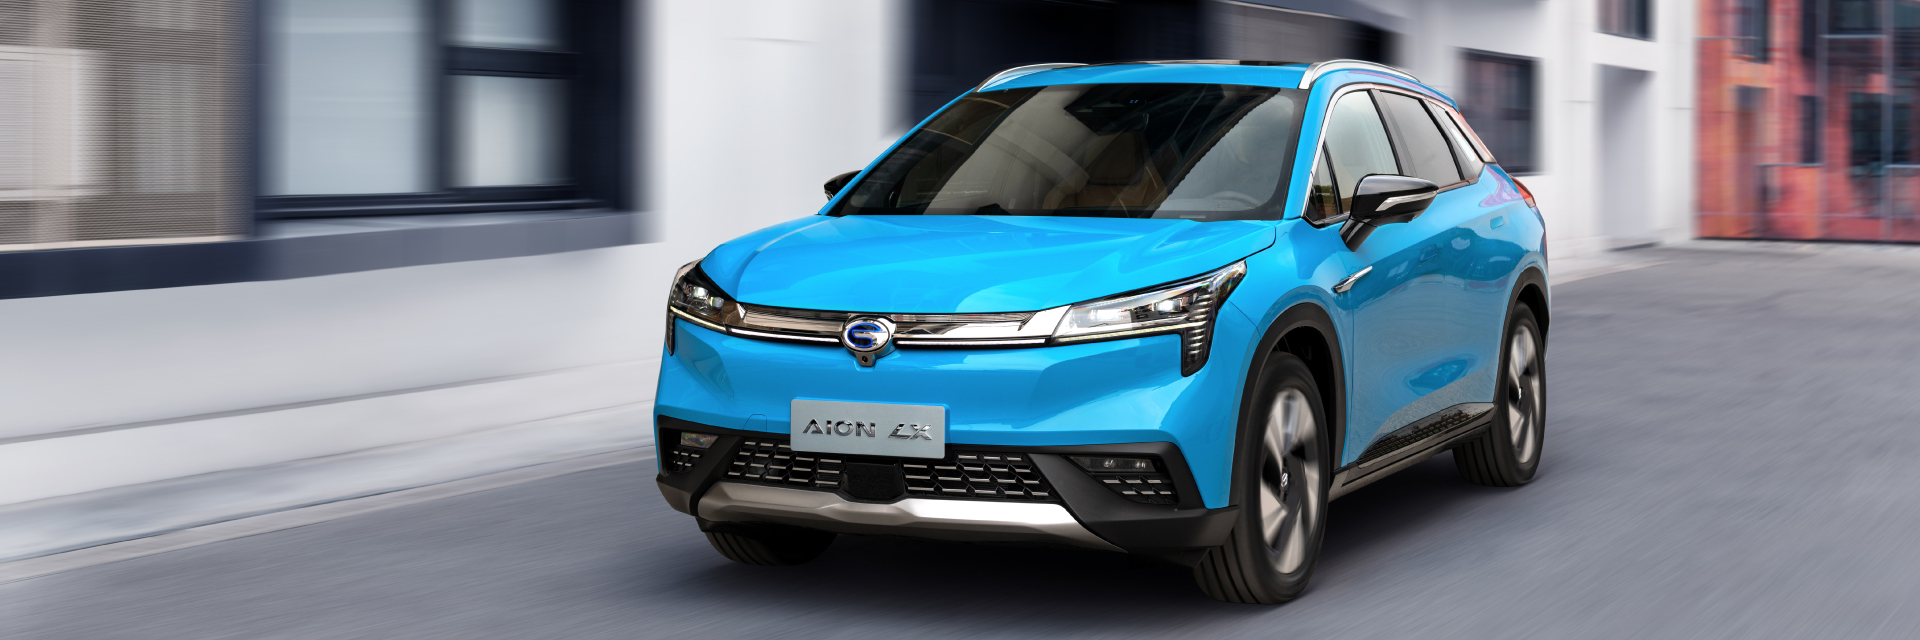 Lead the times to follow Aion LX luxury intelligent SUV